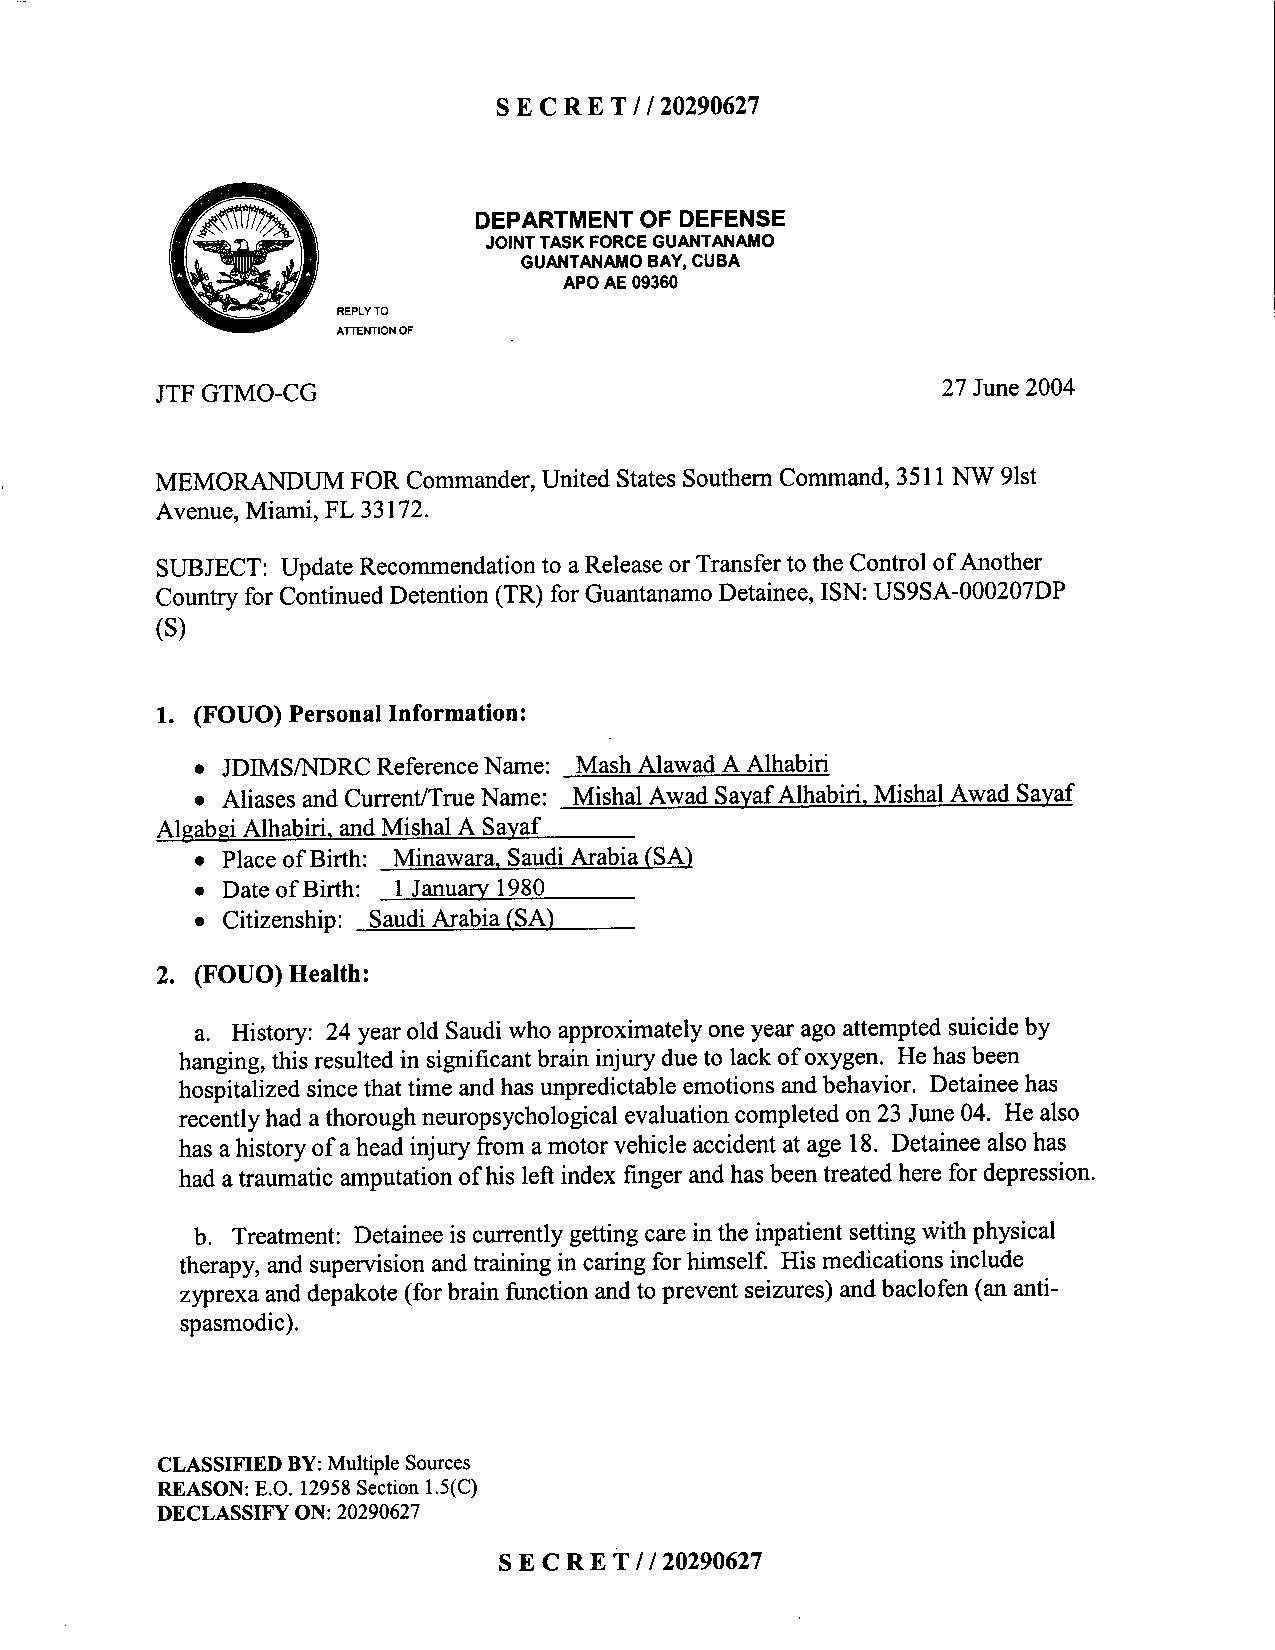 ISN 207's Guantanamo detainee assessment.pdf